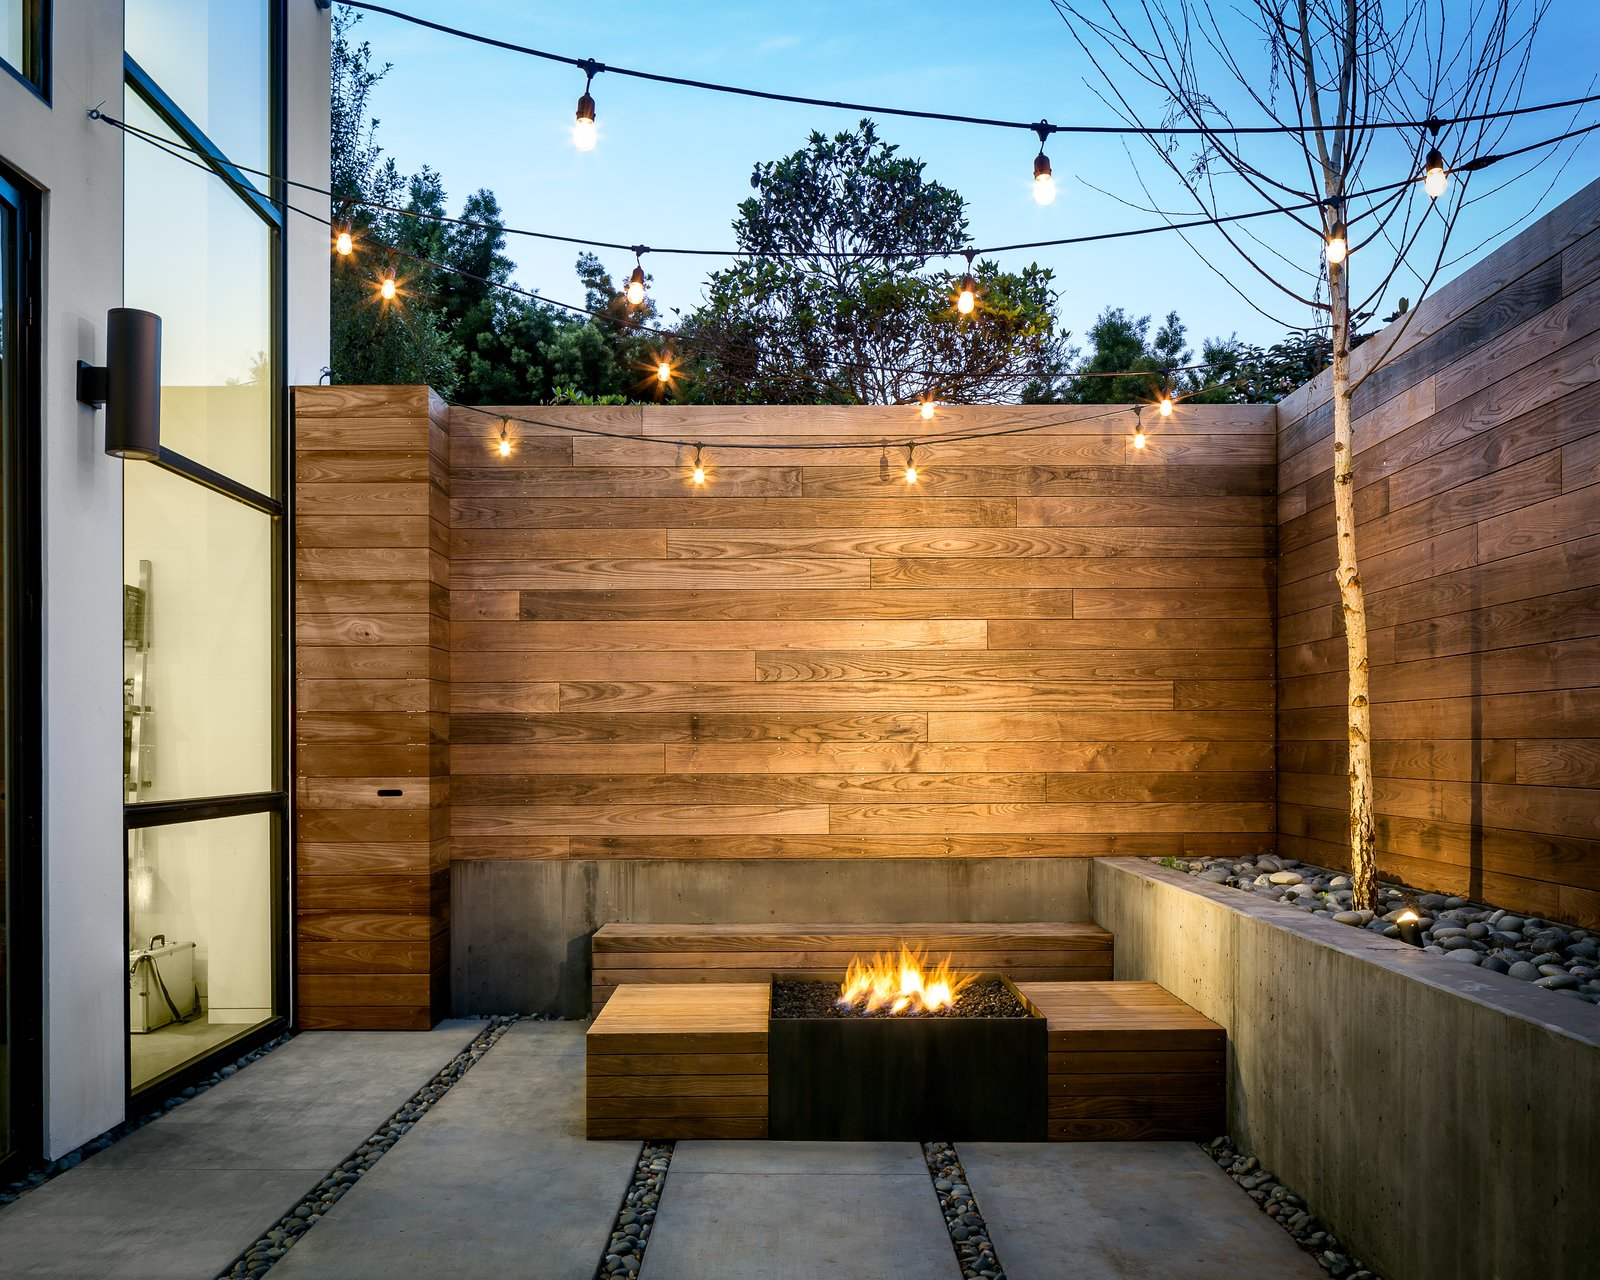 Outdoor, Small Patio, Porch, Deck, Walkways, Shrubs, Concrete Patio, Porch, Deck, Landscape Lighting, Hardscapes, Wood Fences, Wall, Raised Planters, Trees, Back Yard, and Hanging Lighting Back patio  SF House-Tech-Art-Play by building Lab